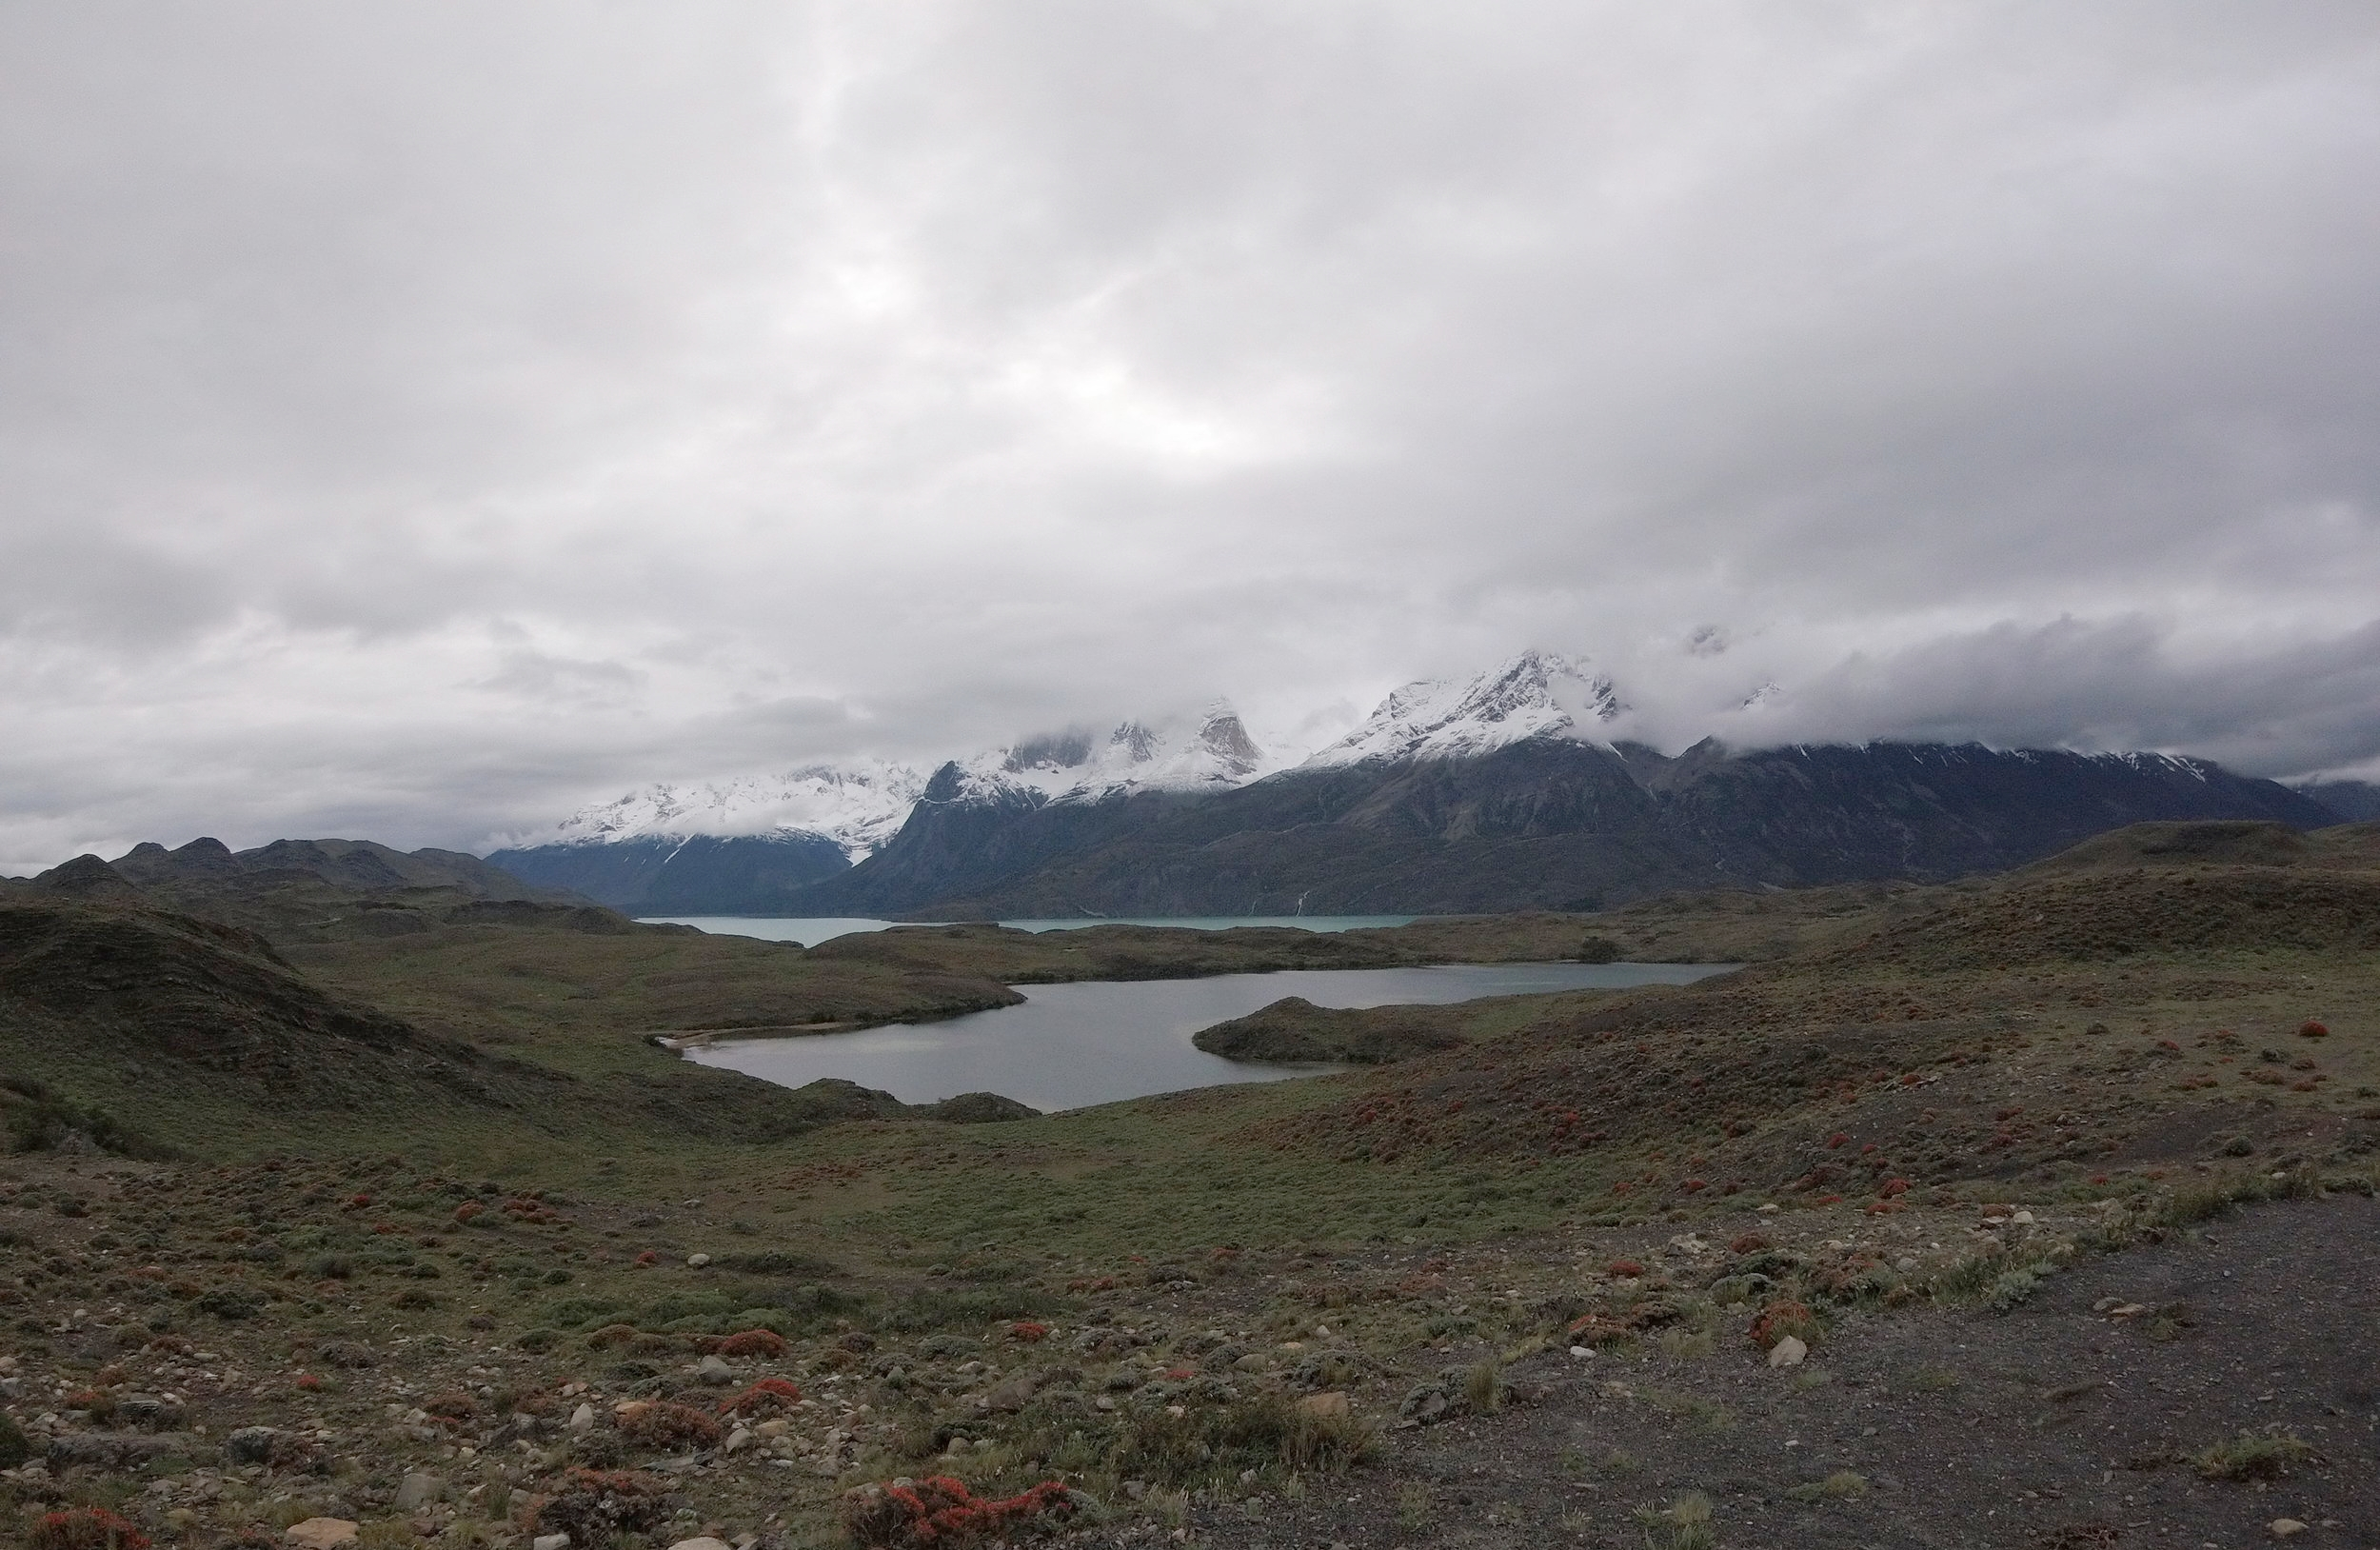 Even on a cloudy, rainy day Patagonia was gorgeous.